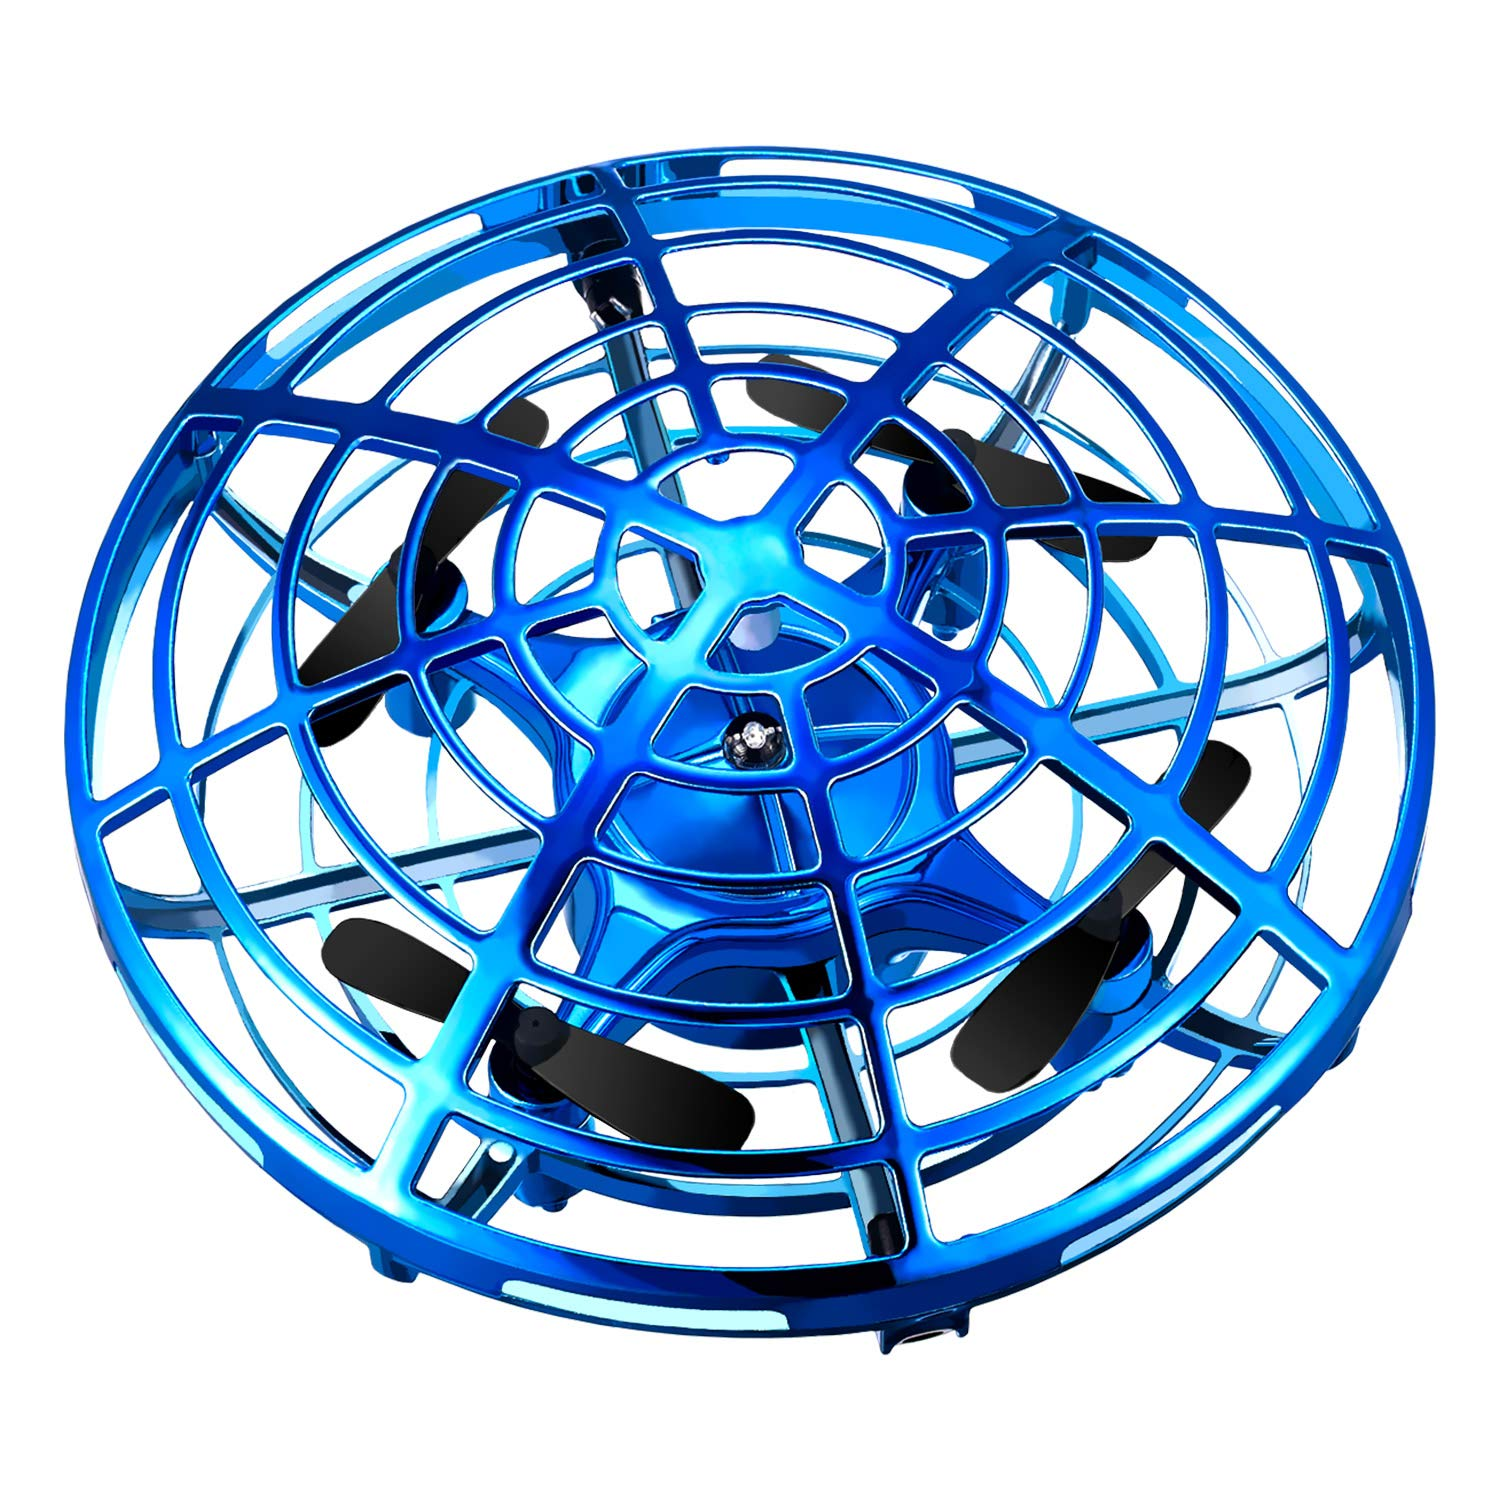 Veken Hand Operated Drones for Kids, Hands-Free Mini Drone Helicopter, Flying Ball Drone Toys for Boys and Girls (Blue) by Veken